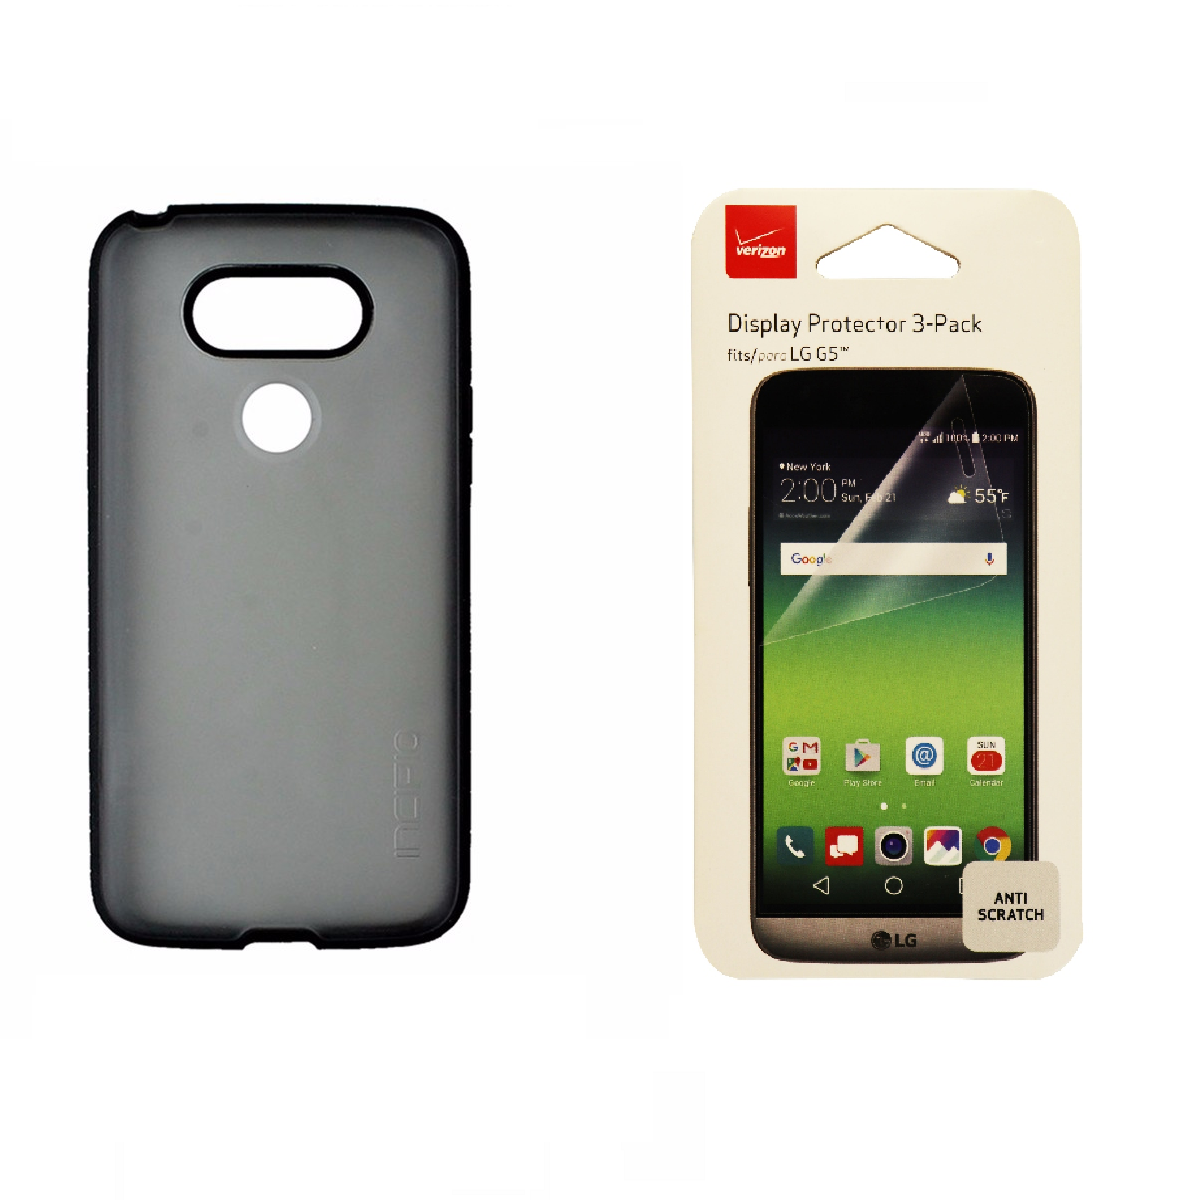 Incipio Black Frost Case and Verizon Screen Protector 3-Pack for LG G5